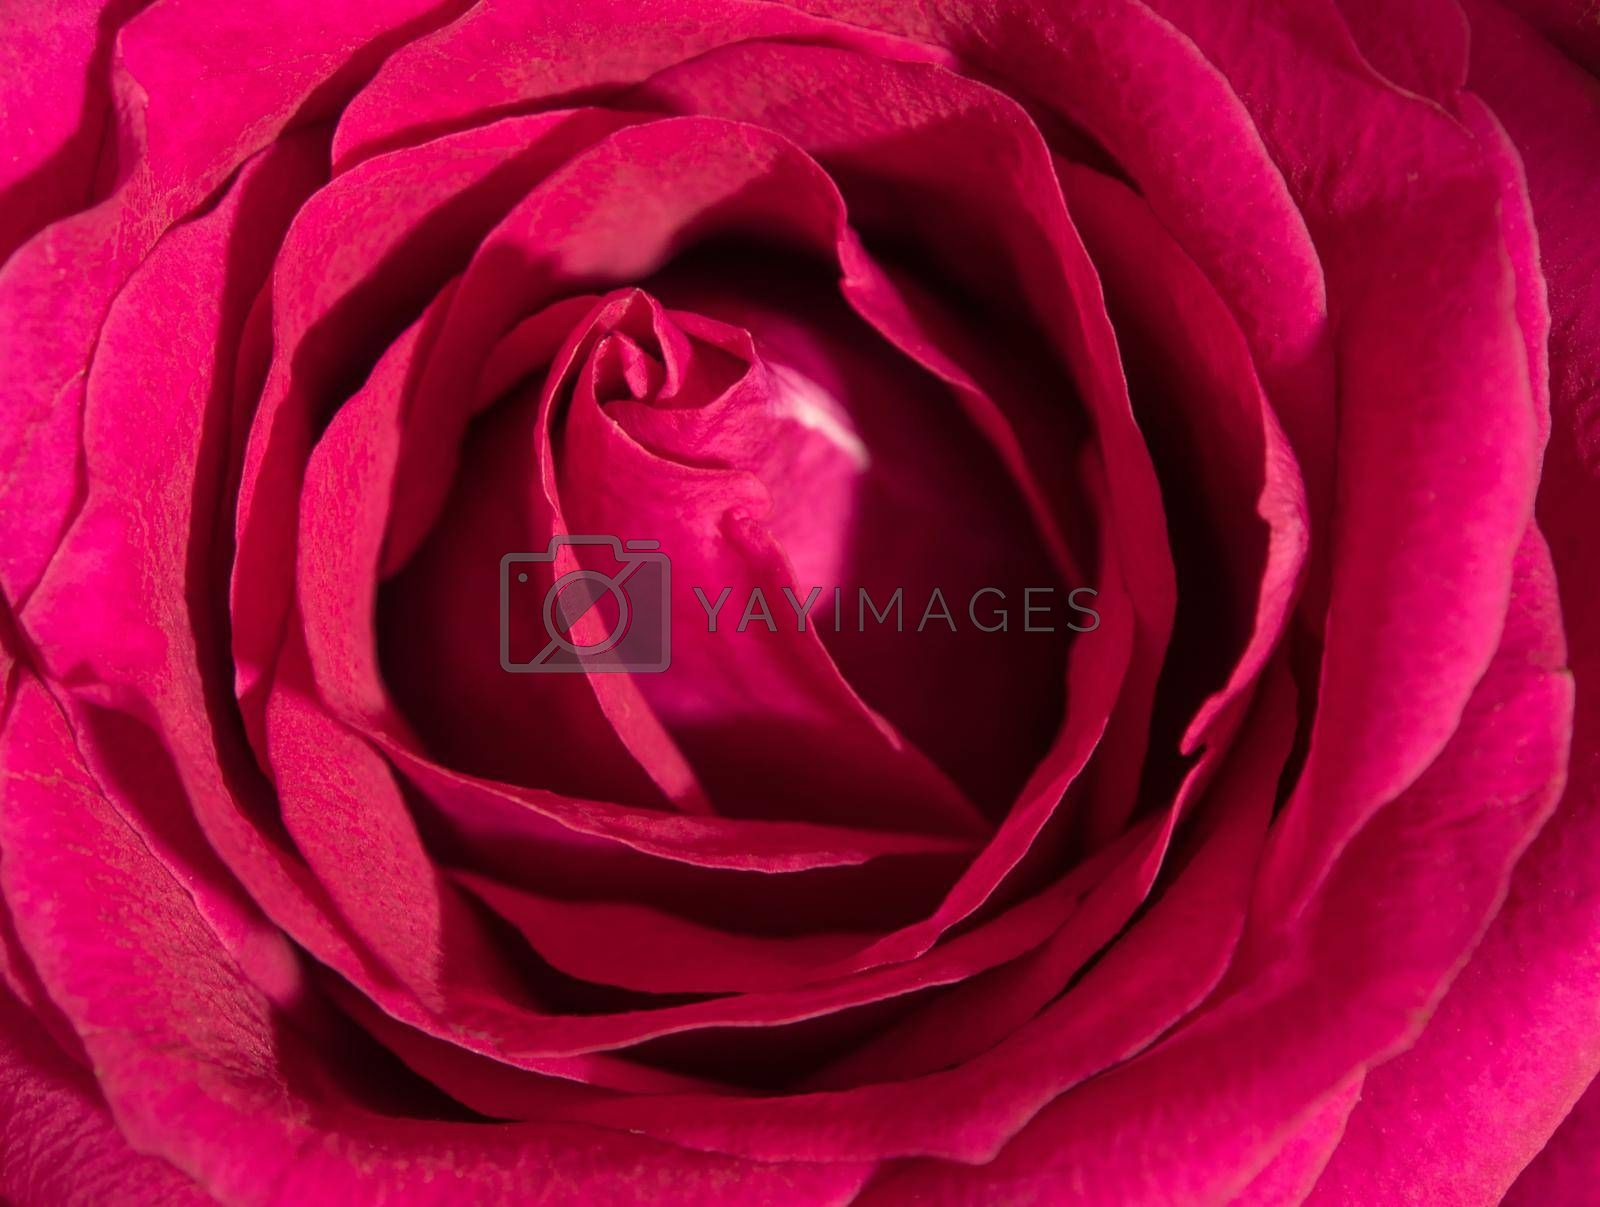 Royalty free image of Sweet color of pink rose , Romance color natural floral background by Satakorn